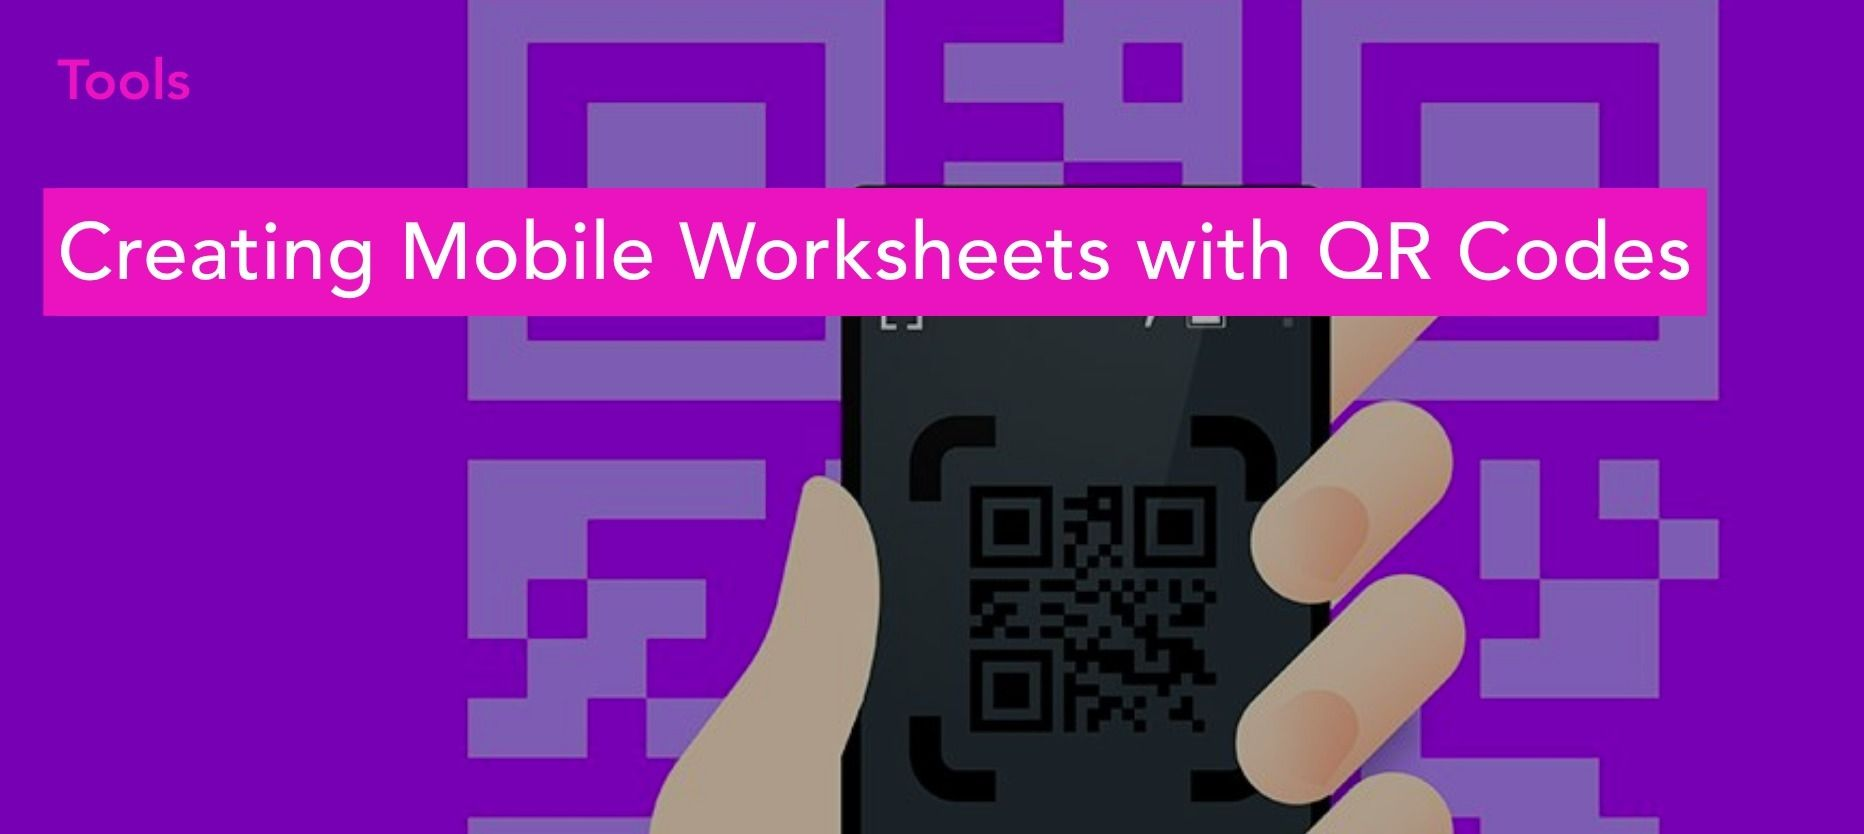 Creating Mobile Worksheets With Qr Codes